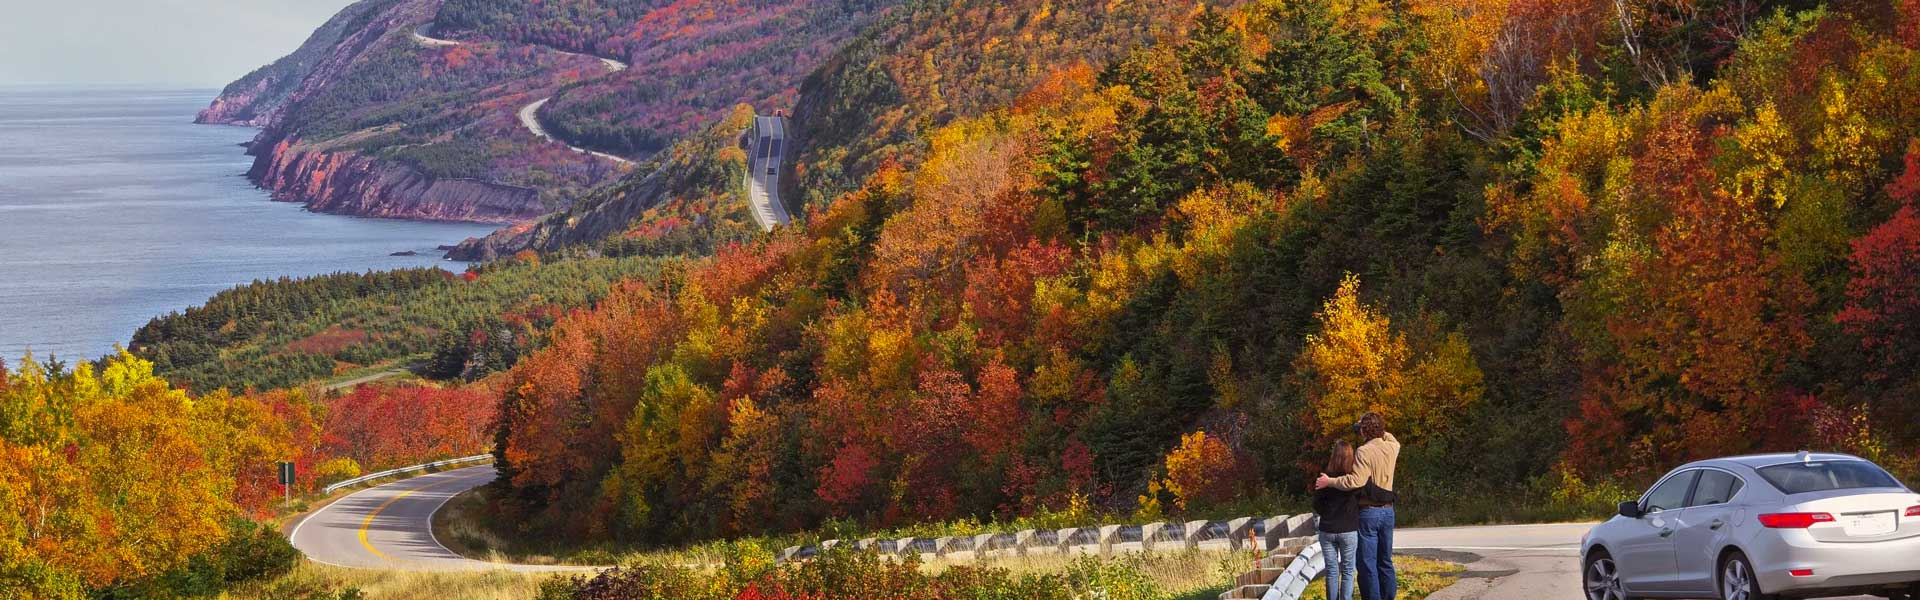 Cabot Trail & Cape Breton Island Vacation Packages